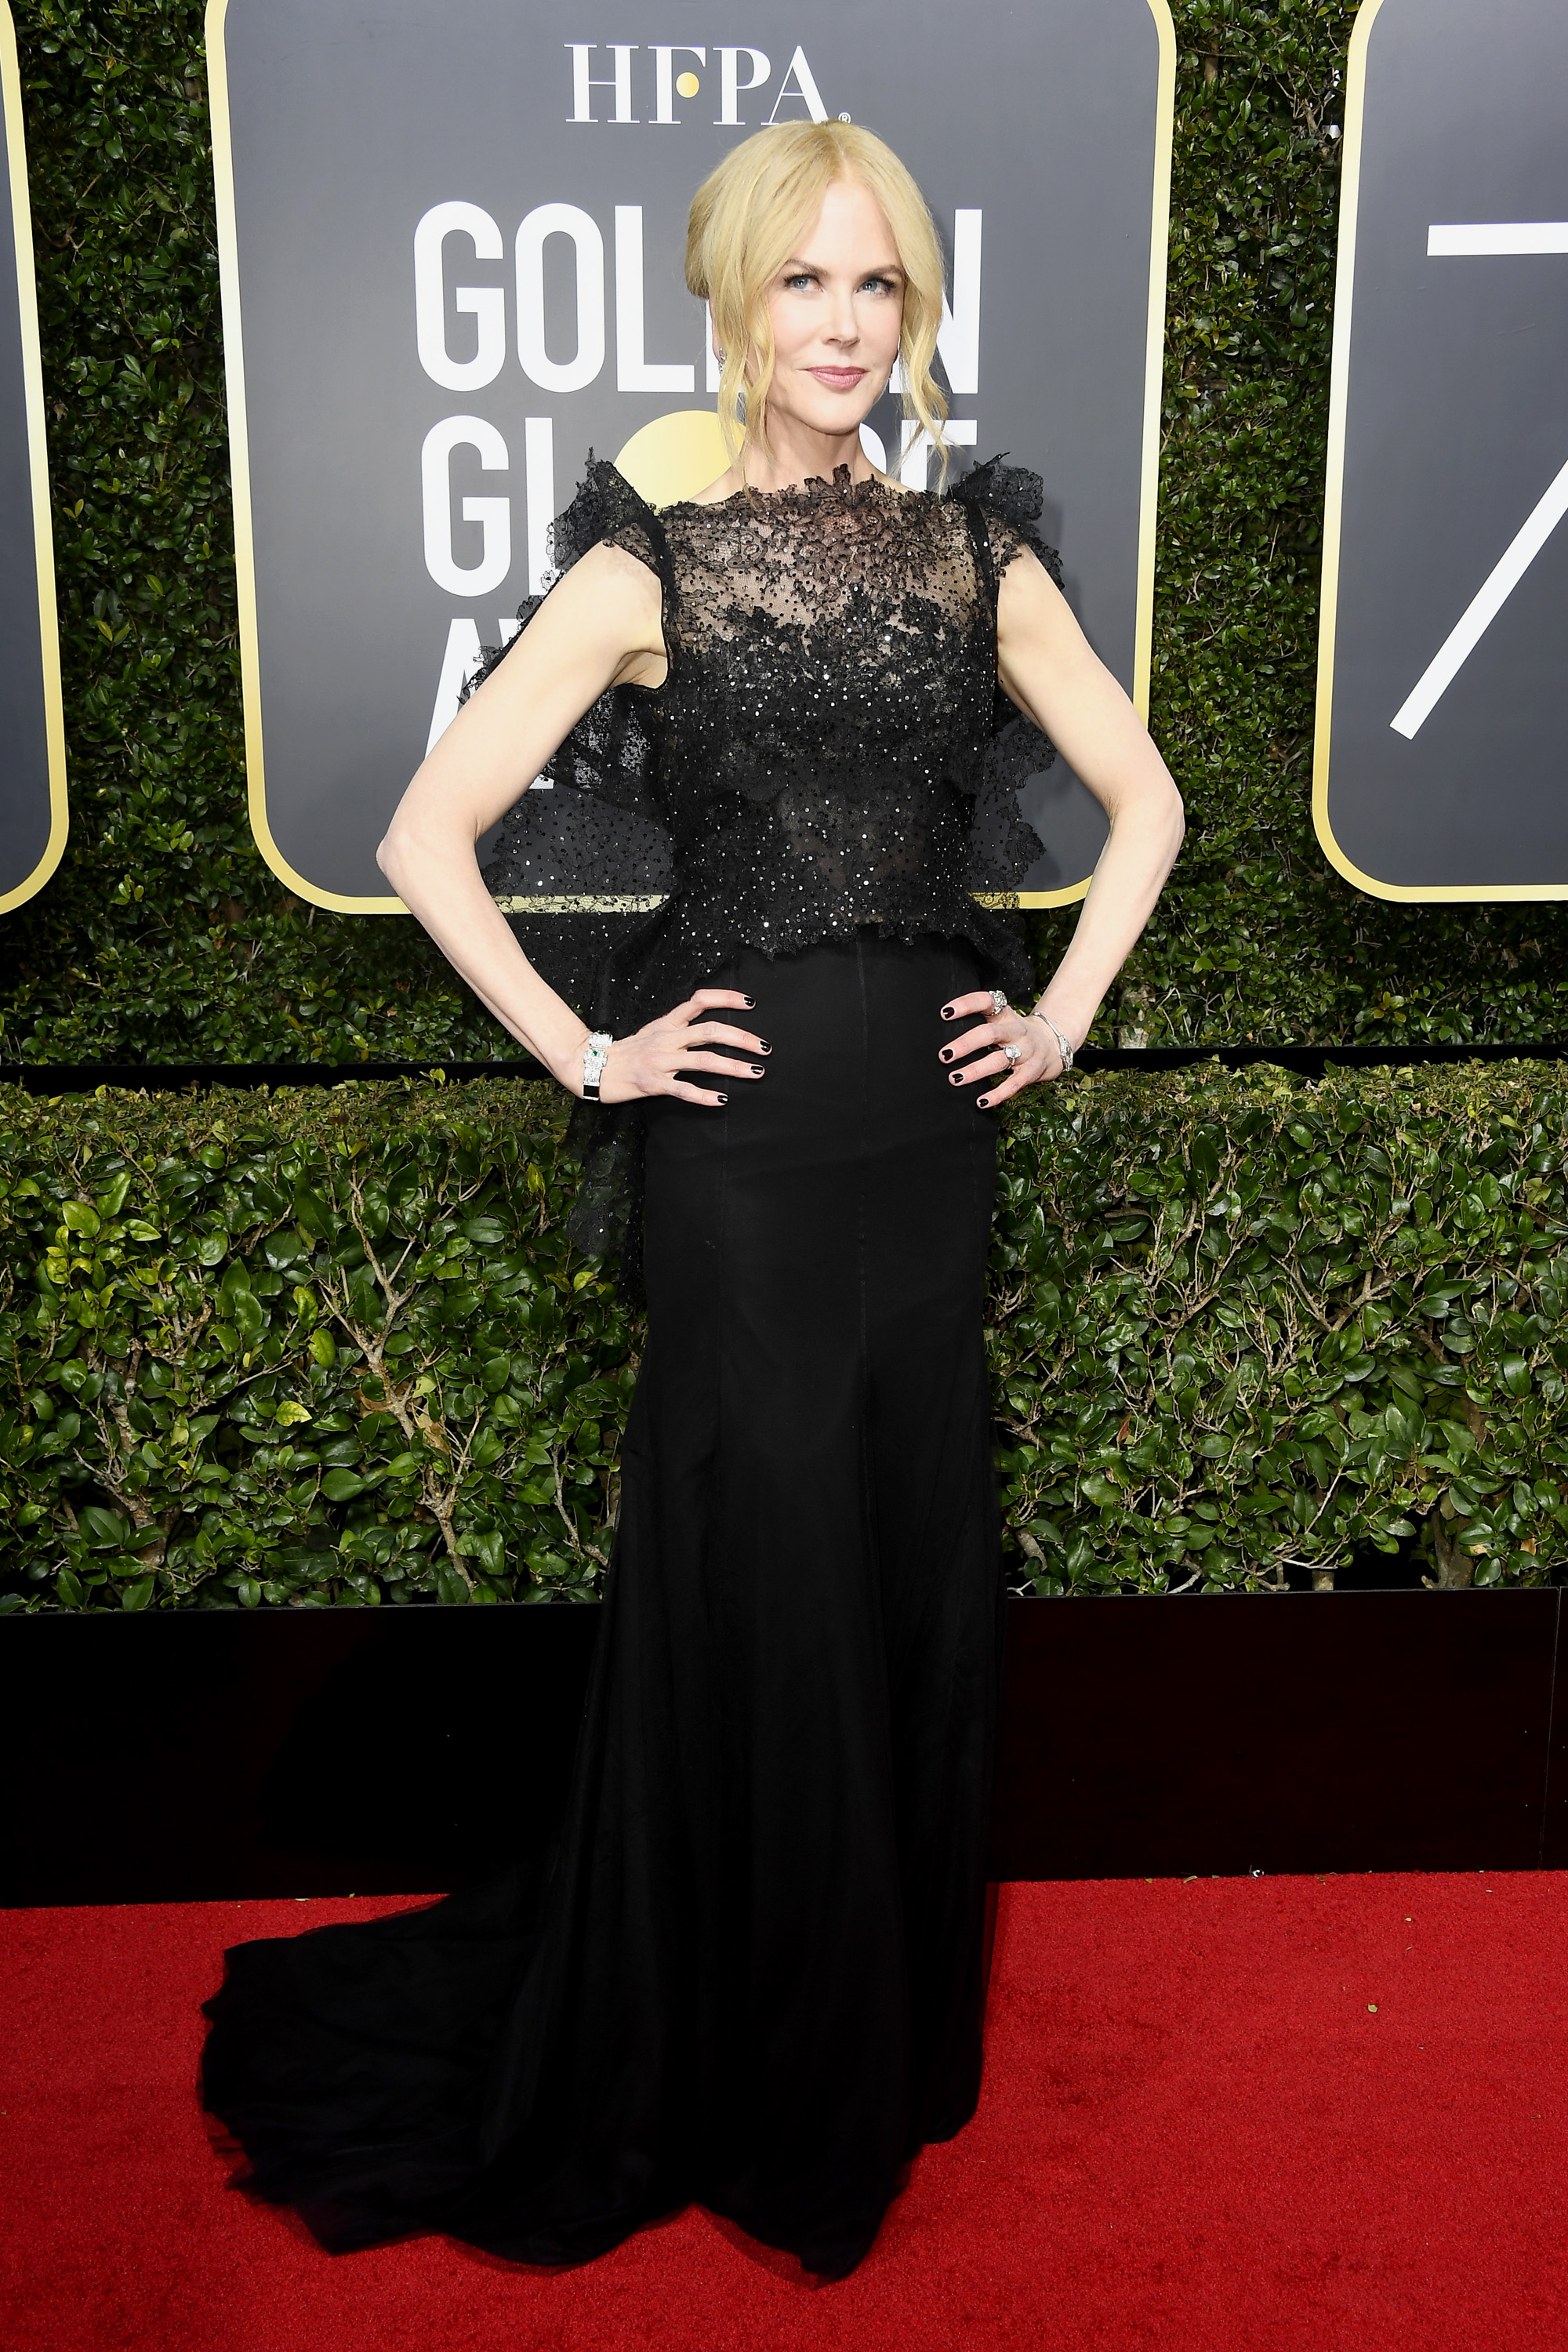 BEVERLY HILLS, CA - JANUARY 07:  Actor Nicole Kidman attends The 75th Annual Golden Globe Awards at The Beverly Hilton Hotel on January 7, 2018 in Beverly Hills, California.  (Photo by Frazer Harrison/Getty Images)